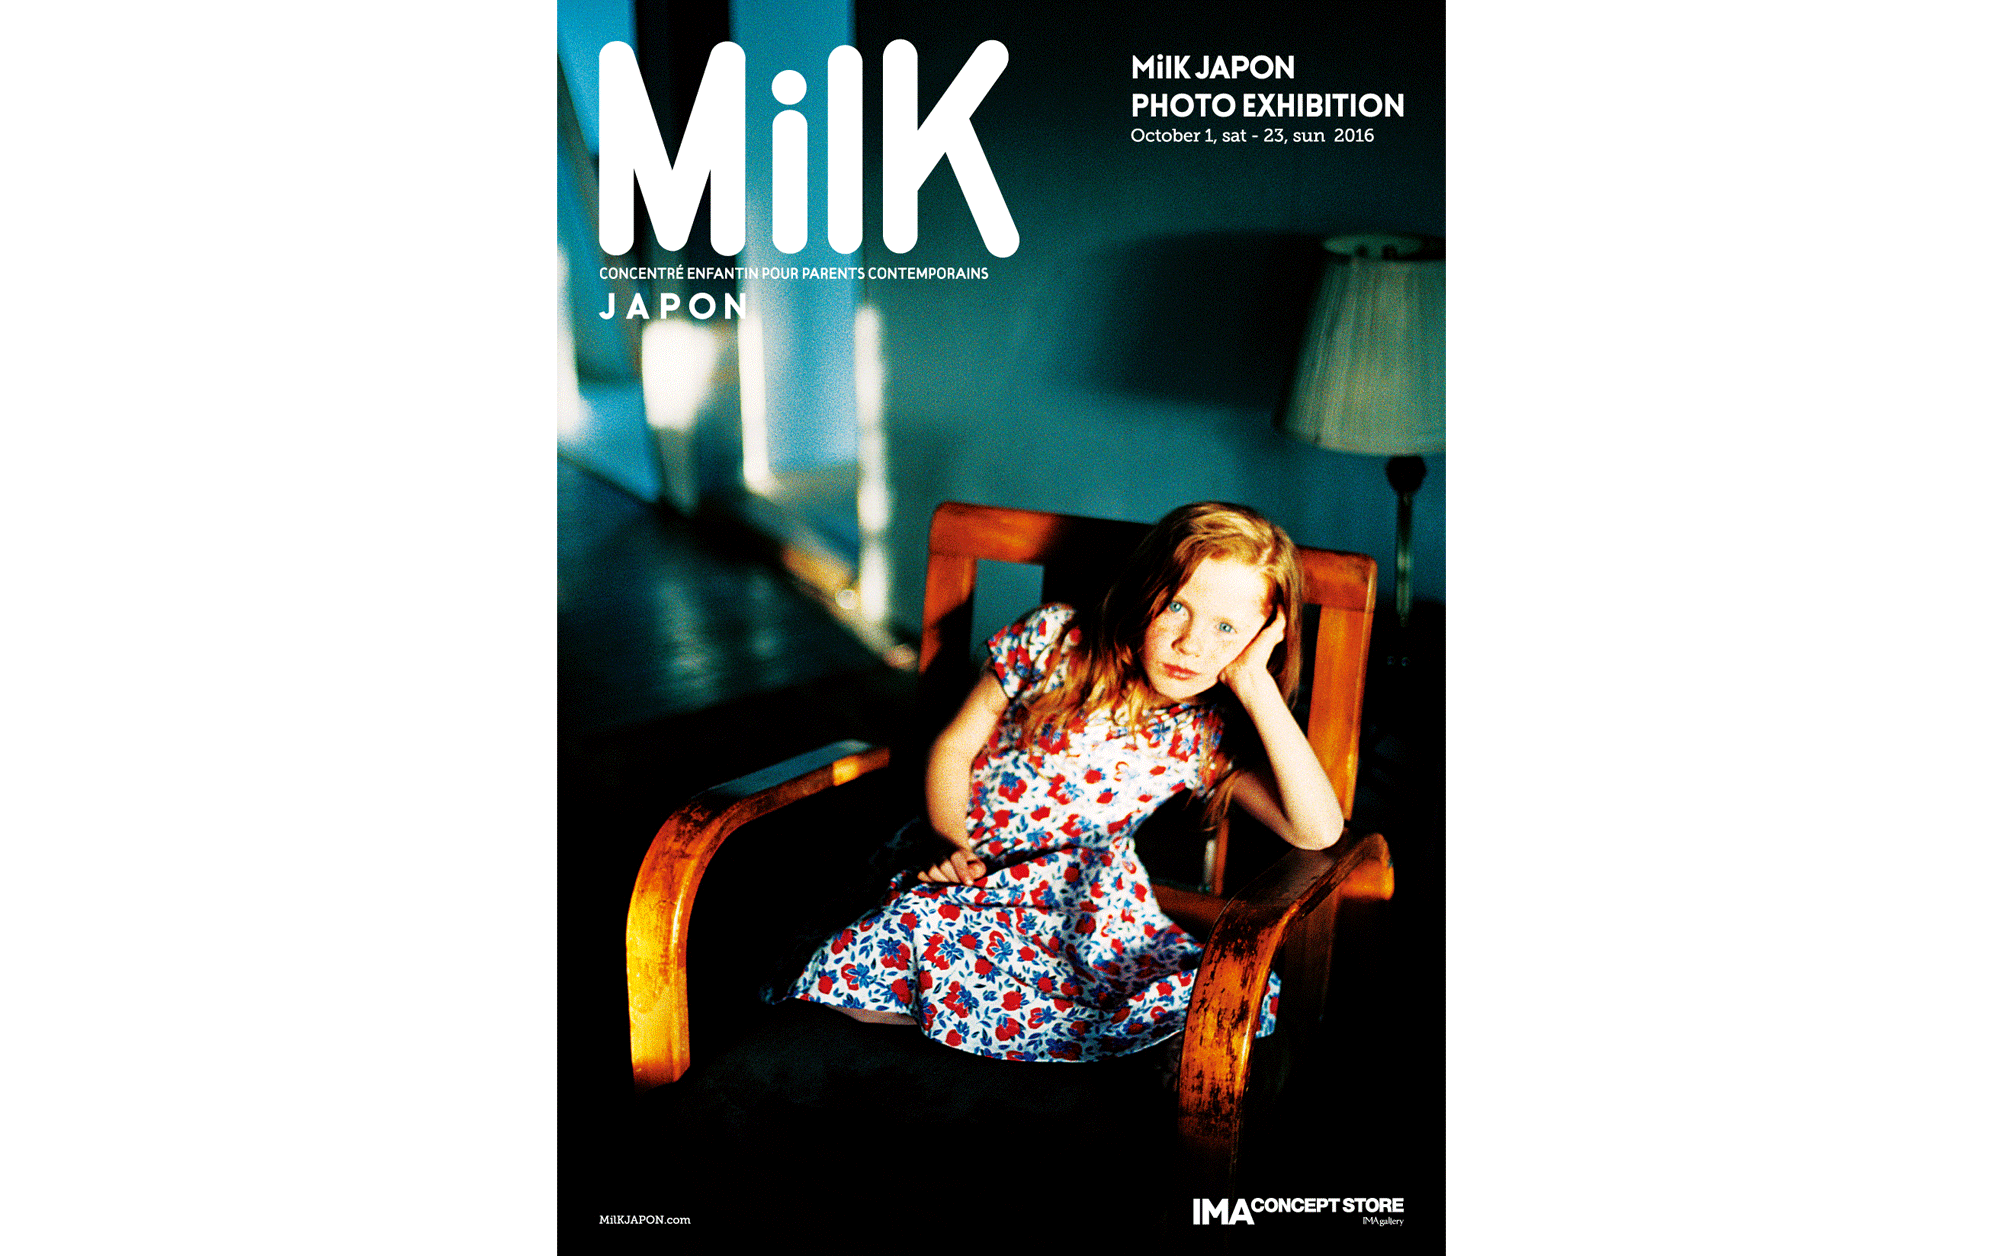 MilK JAPON PHOTO EXHIBITION